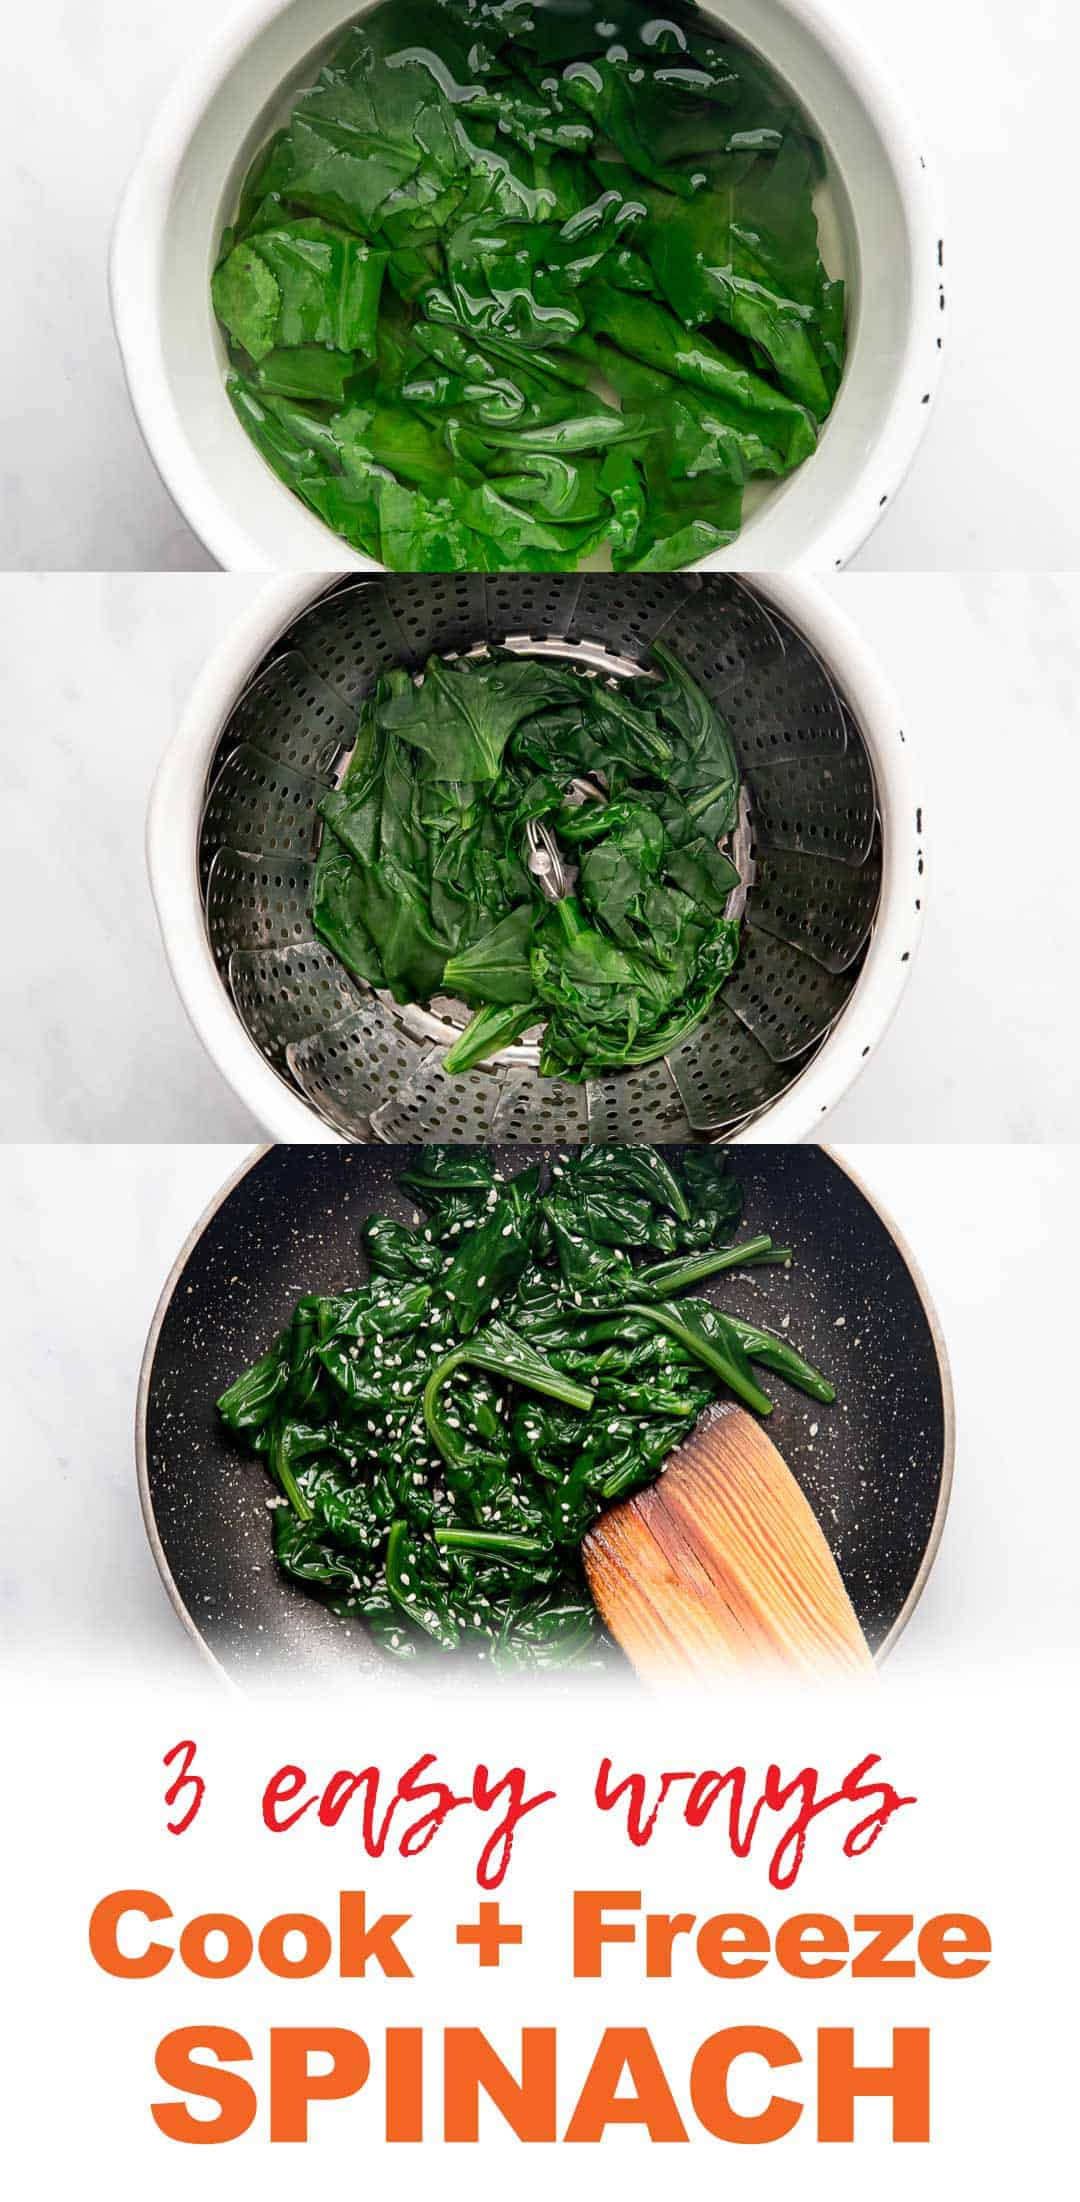 How to cook Spinach 3 Ways + freezing instructions